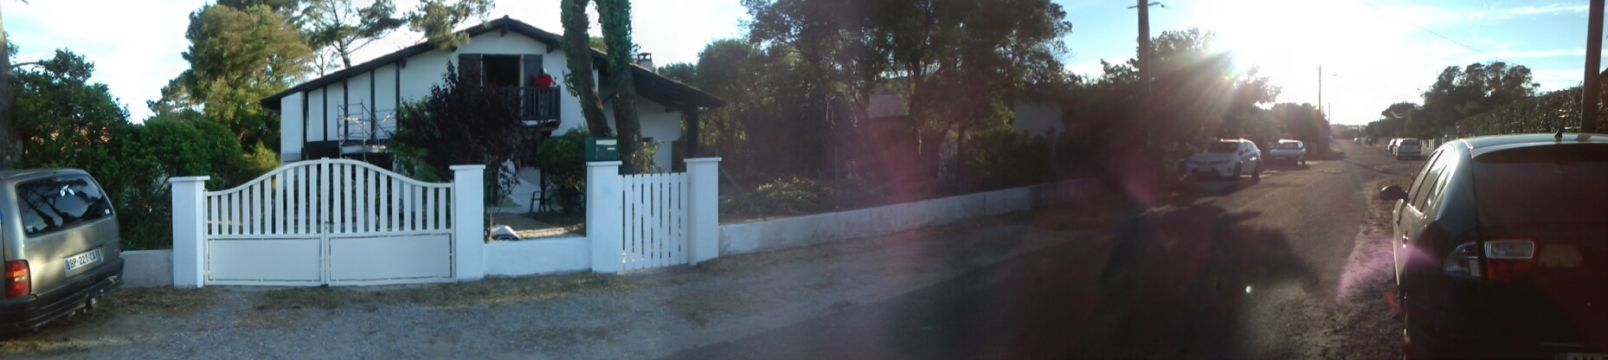 House in labenne Ocean - Vacation, holiday rental ad # 36555 Picture #8